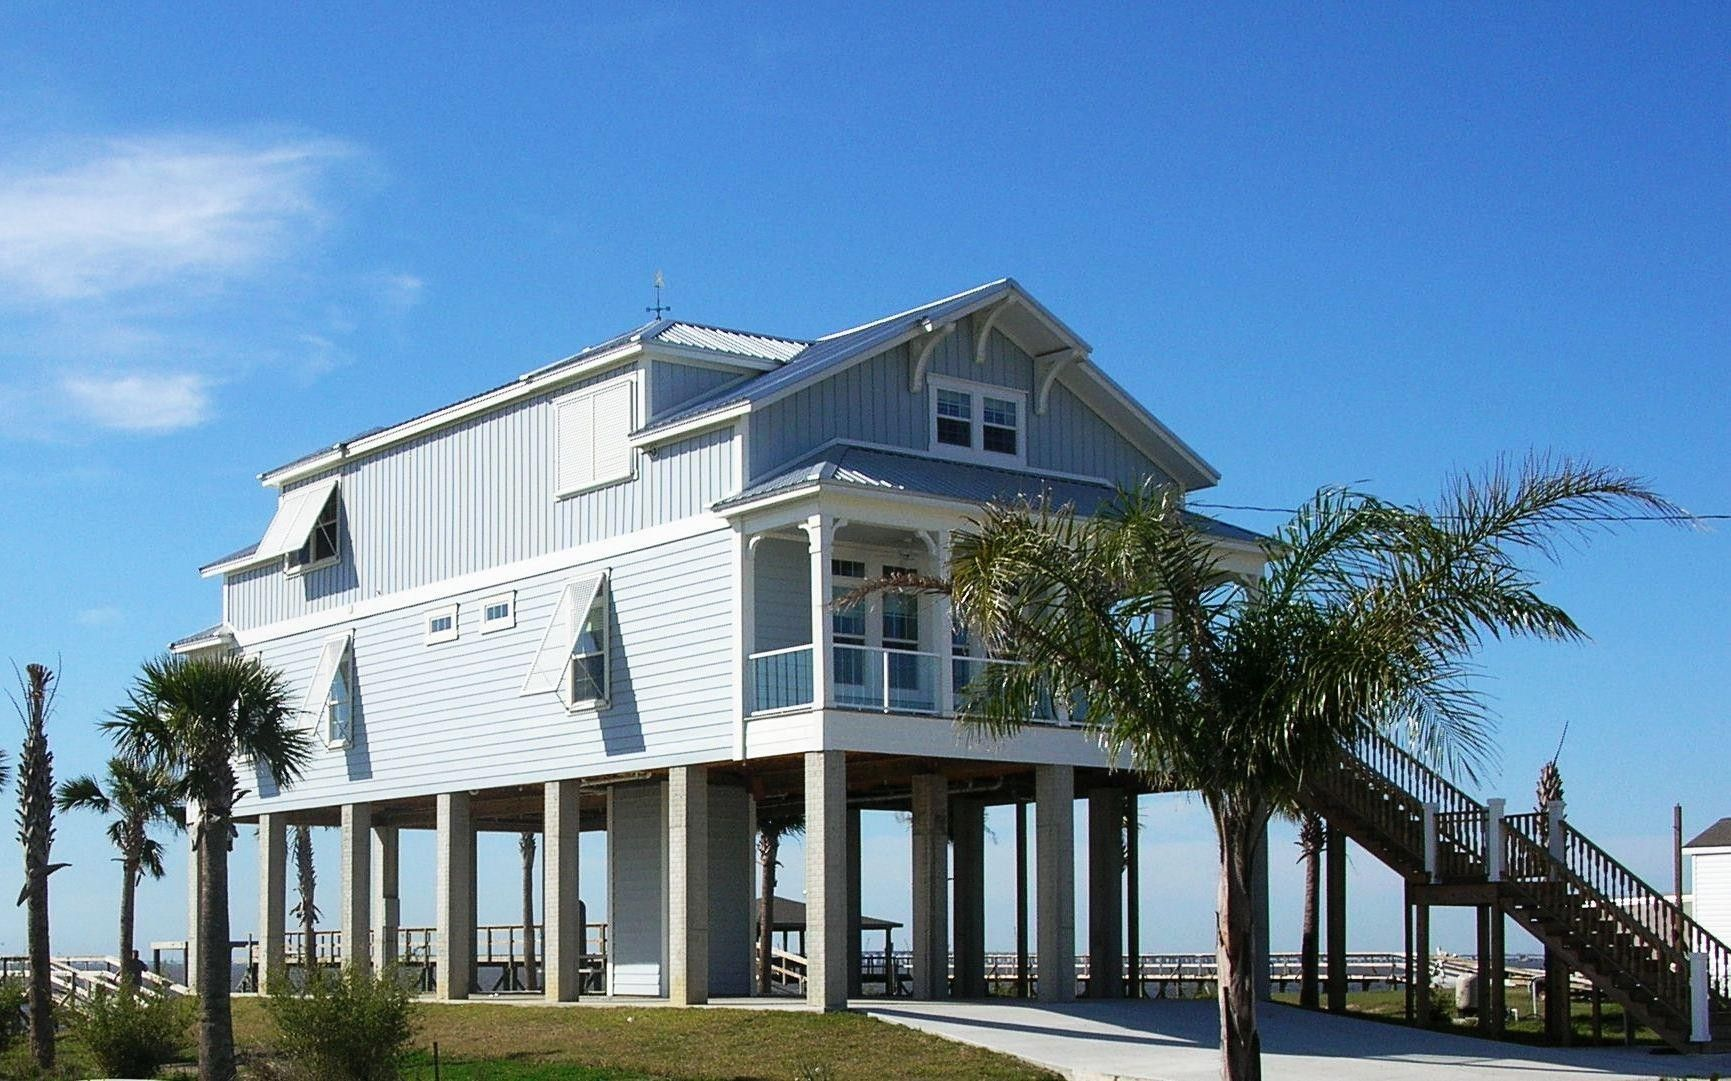 Beautiful Home On Stilts House On Stilts Beach House Design Beach House Plans